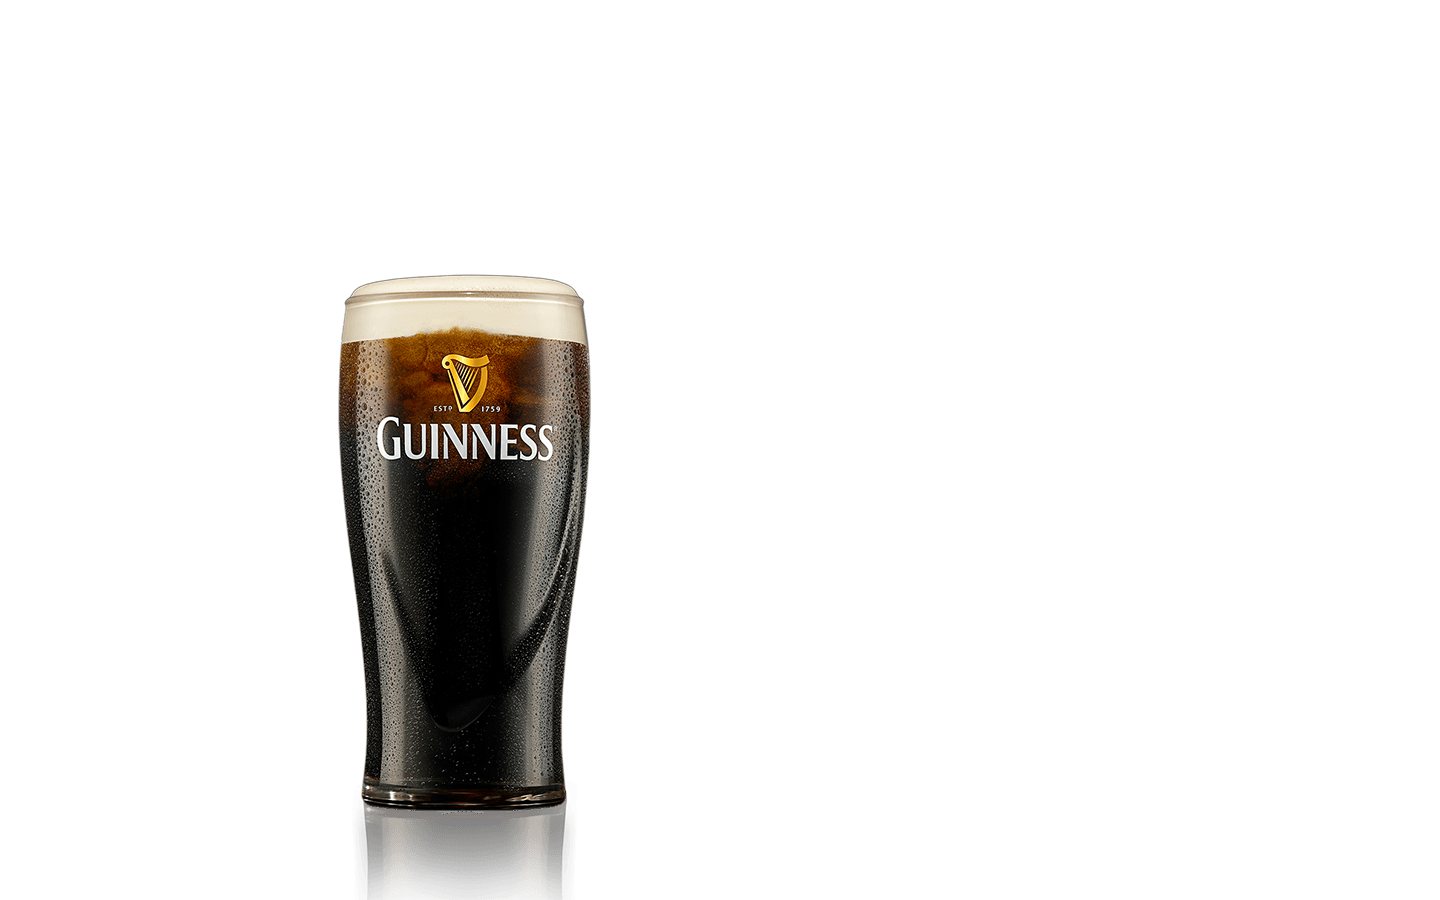 pdp_1440x900__0001_guinness_draught_spritz2_bottle.png